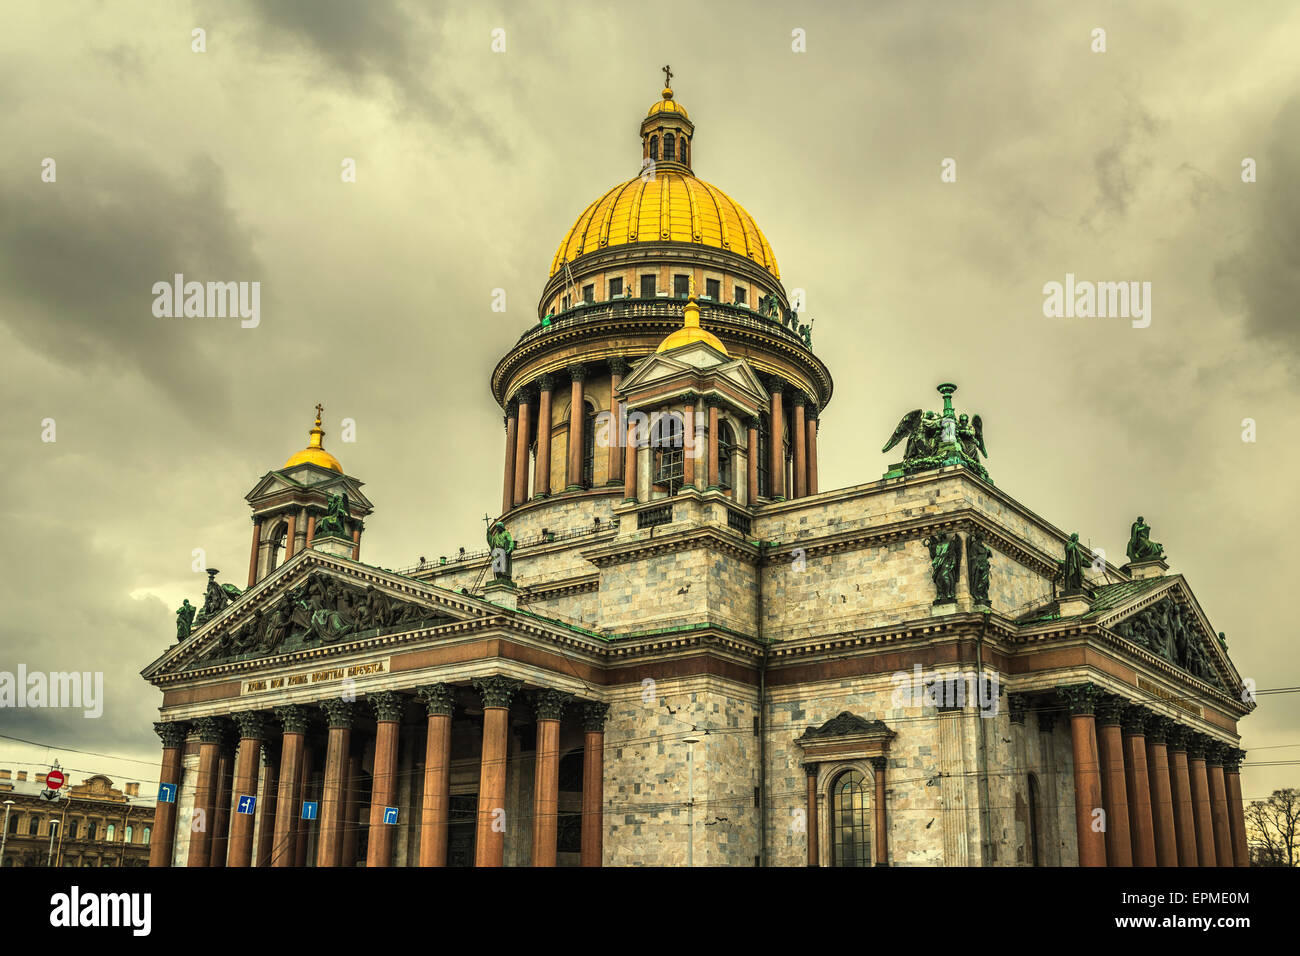 Retro style image of Saint Isaac's Cathedral in Saint Petersburg, Russia - Stock Image